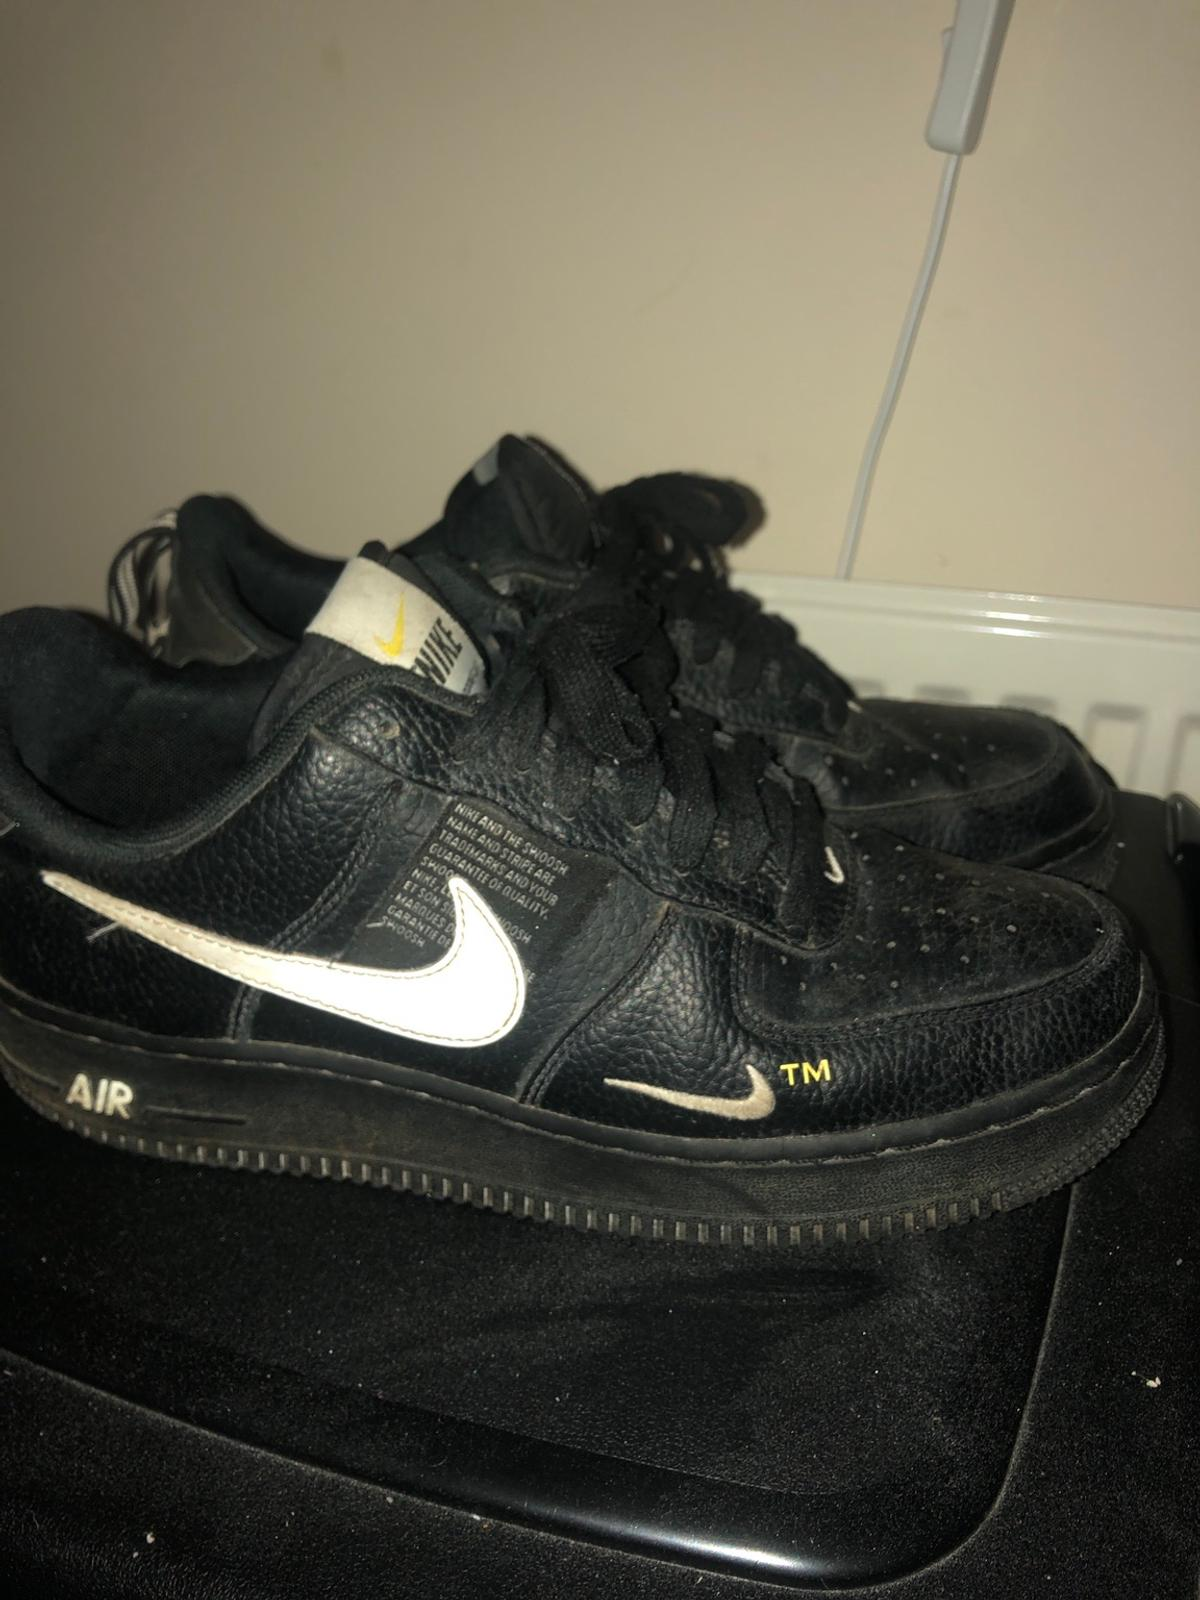 ciclo científico feo  Nike Air Force 1 in BA2 Bath for £30.00 for sale | Shpock